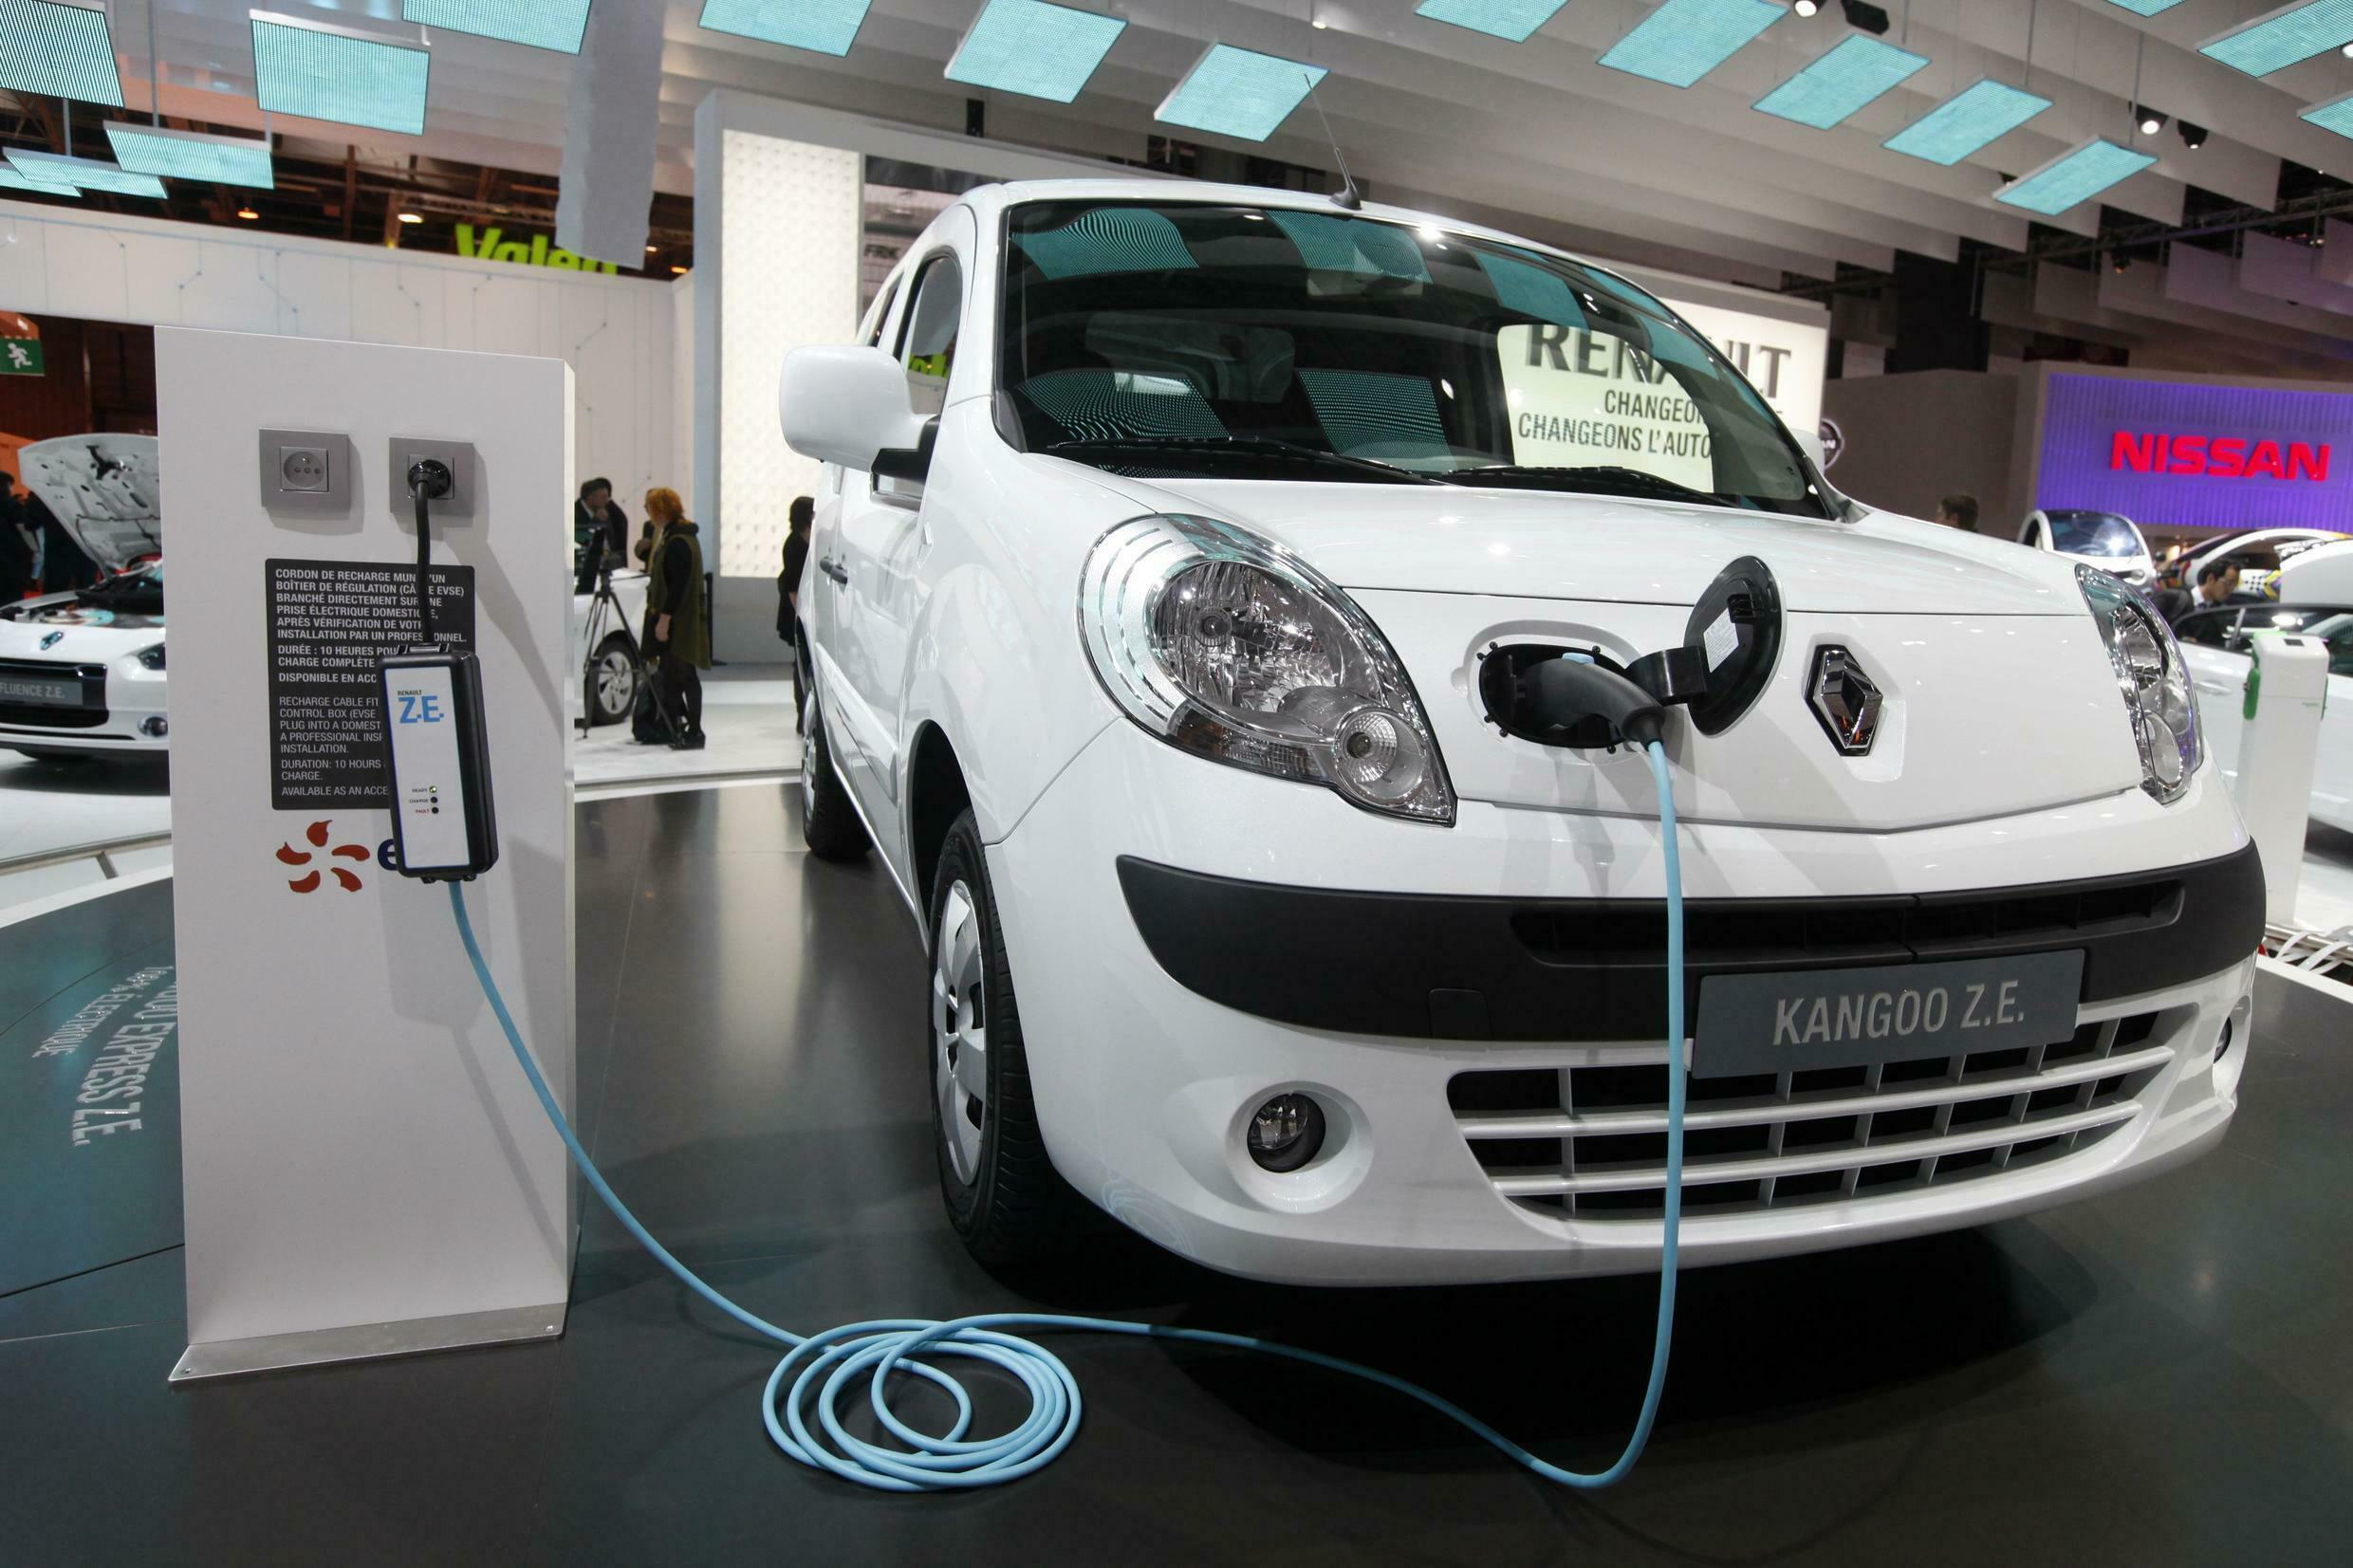 Electric Kangoo model from Renault